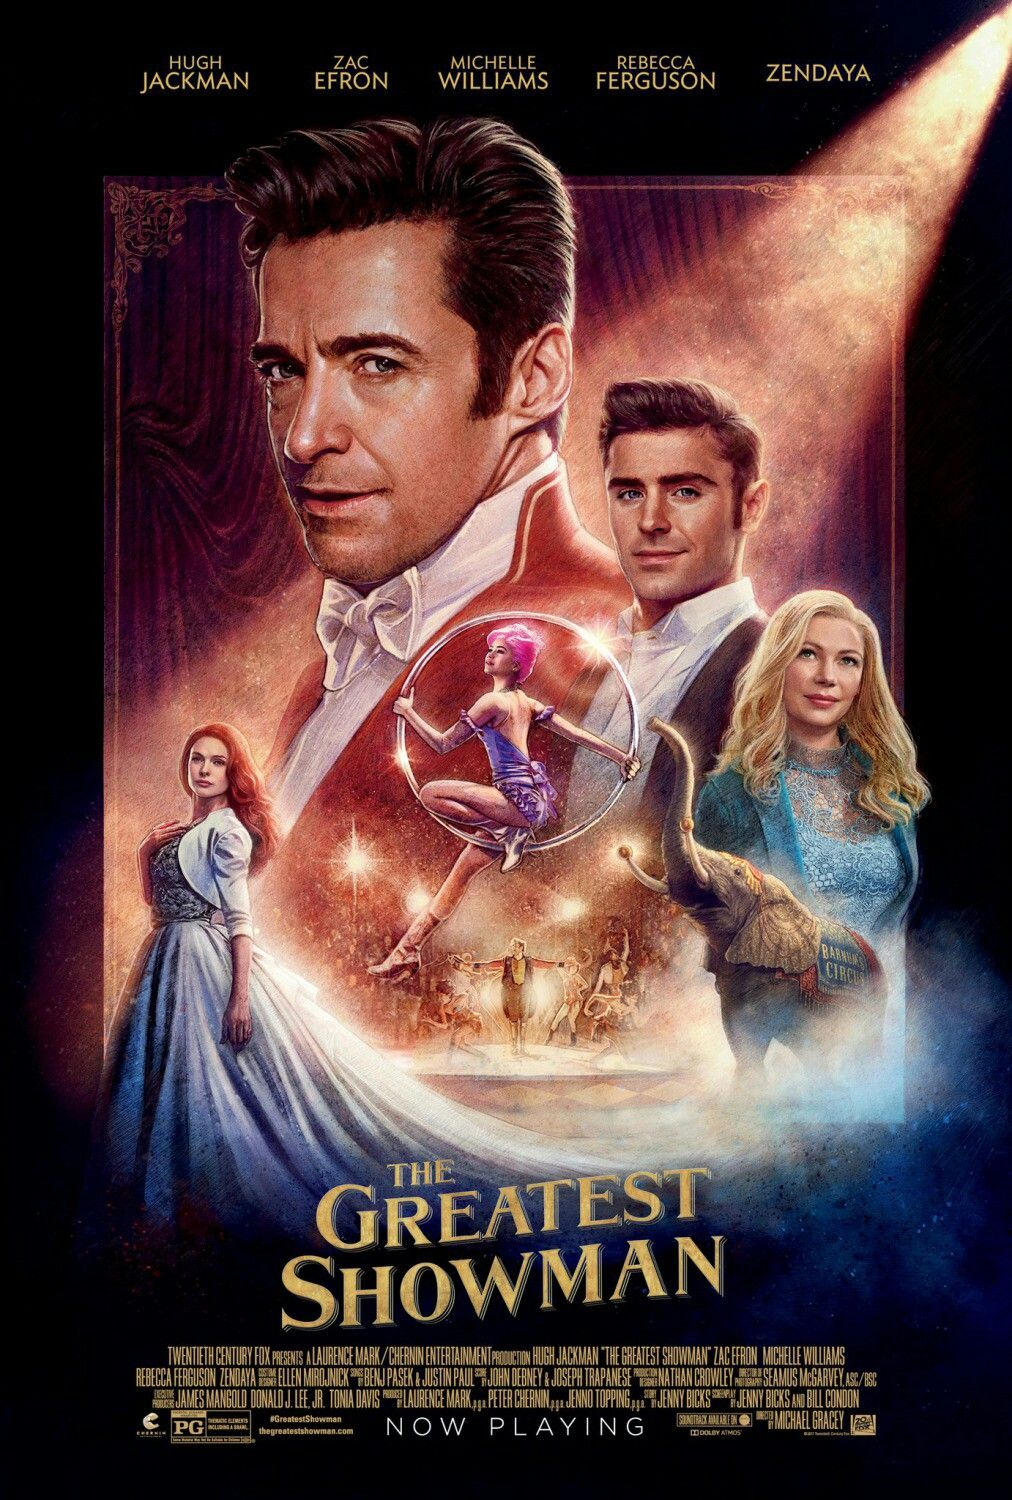 The Greatest Showman 🎬052018 | Showman movie, The greatest showman,  Greatful